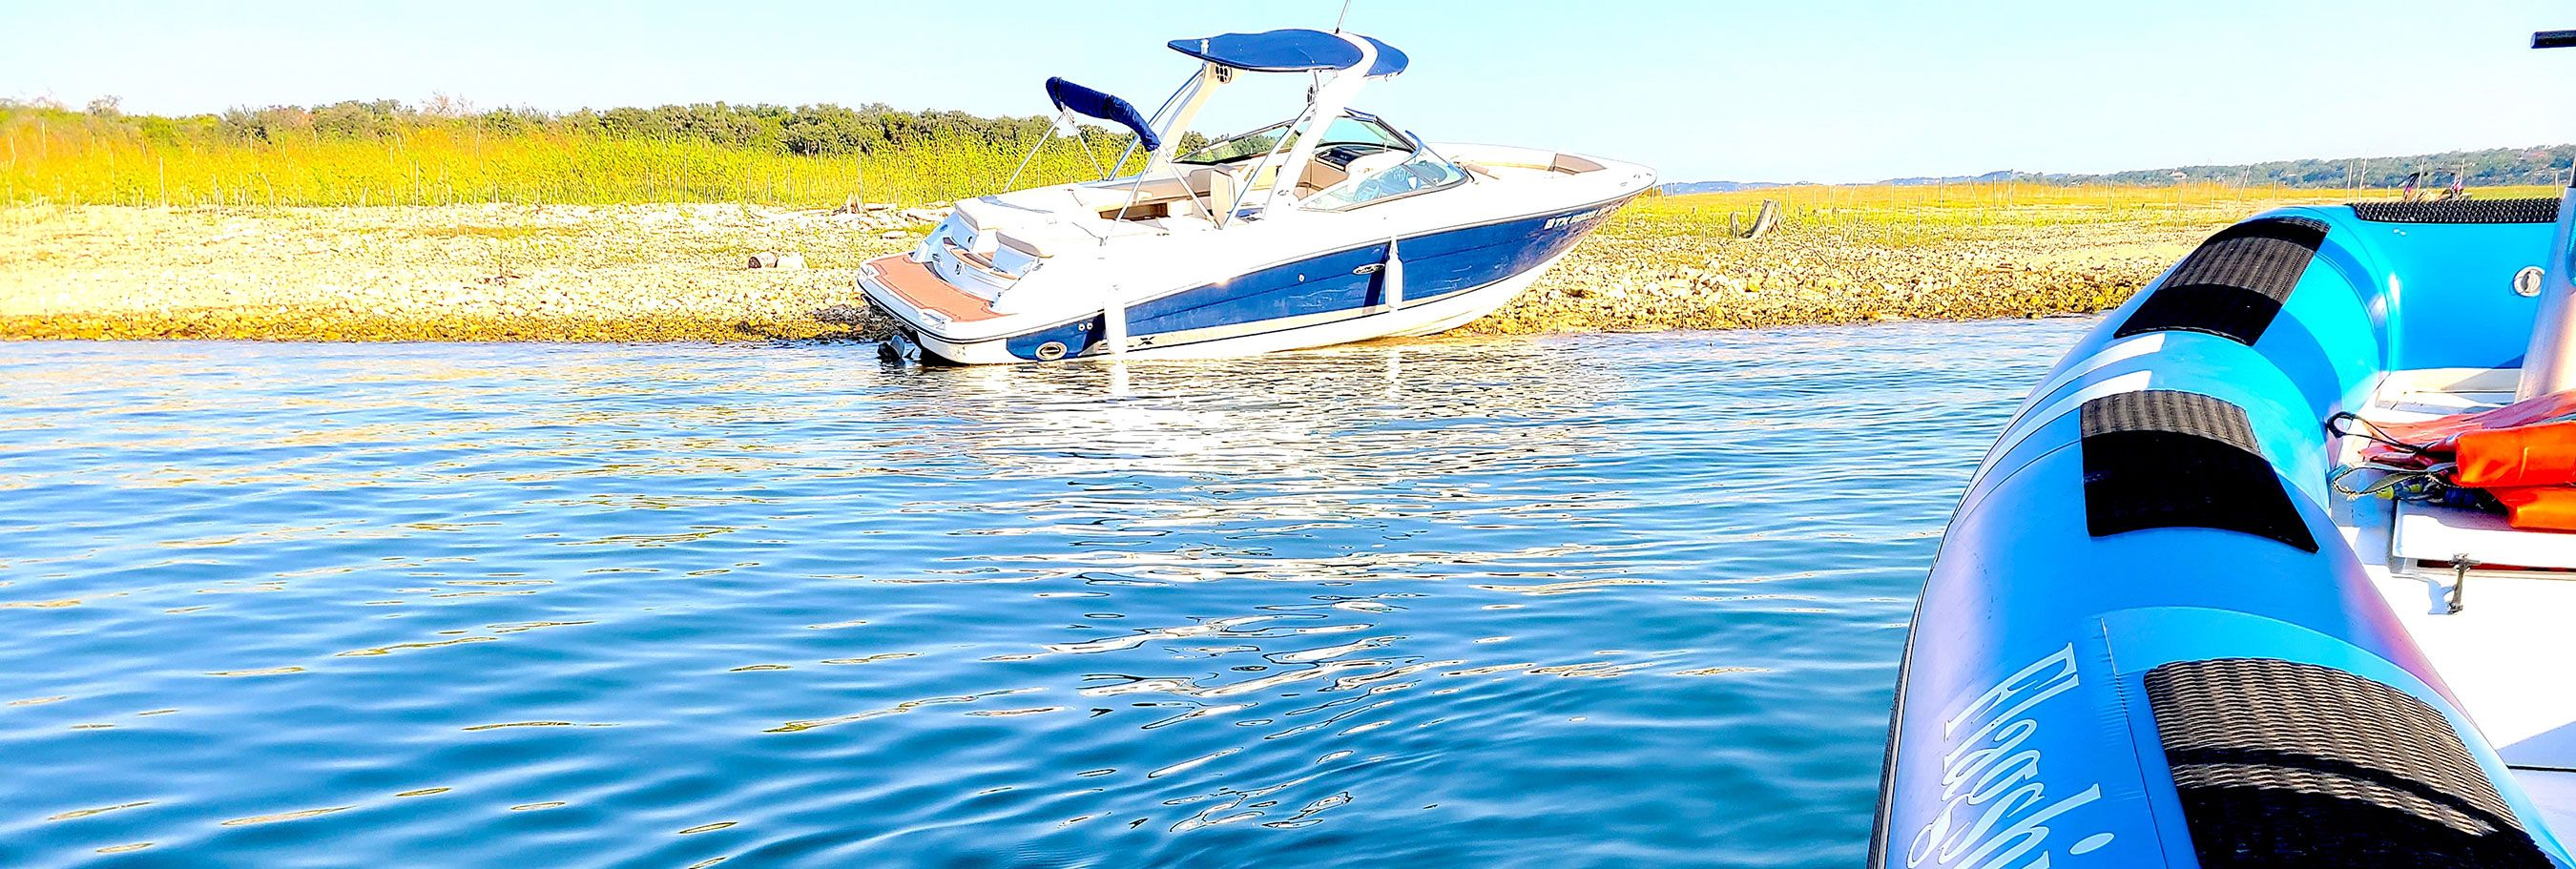 24/7 EMERGENCY BOAT TOWING SERVICES